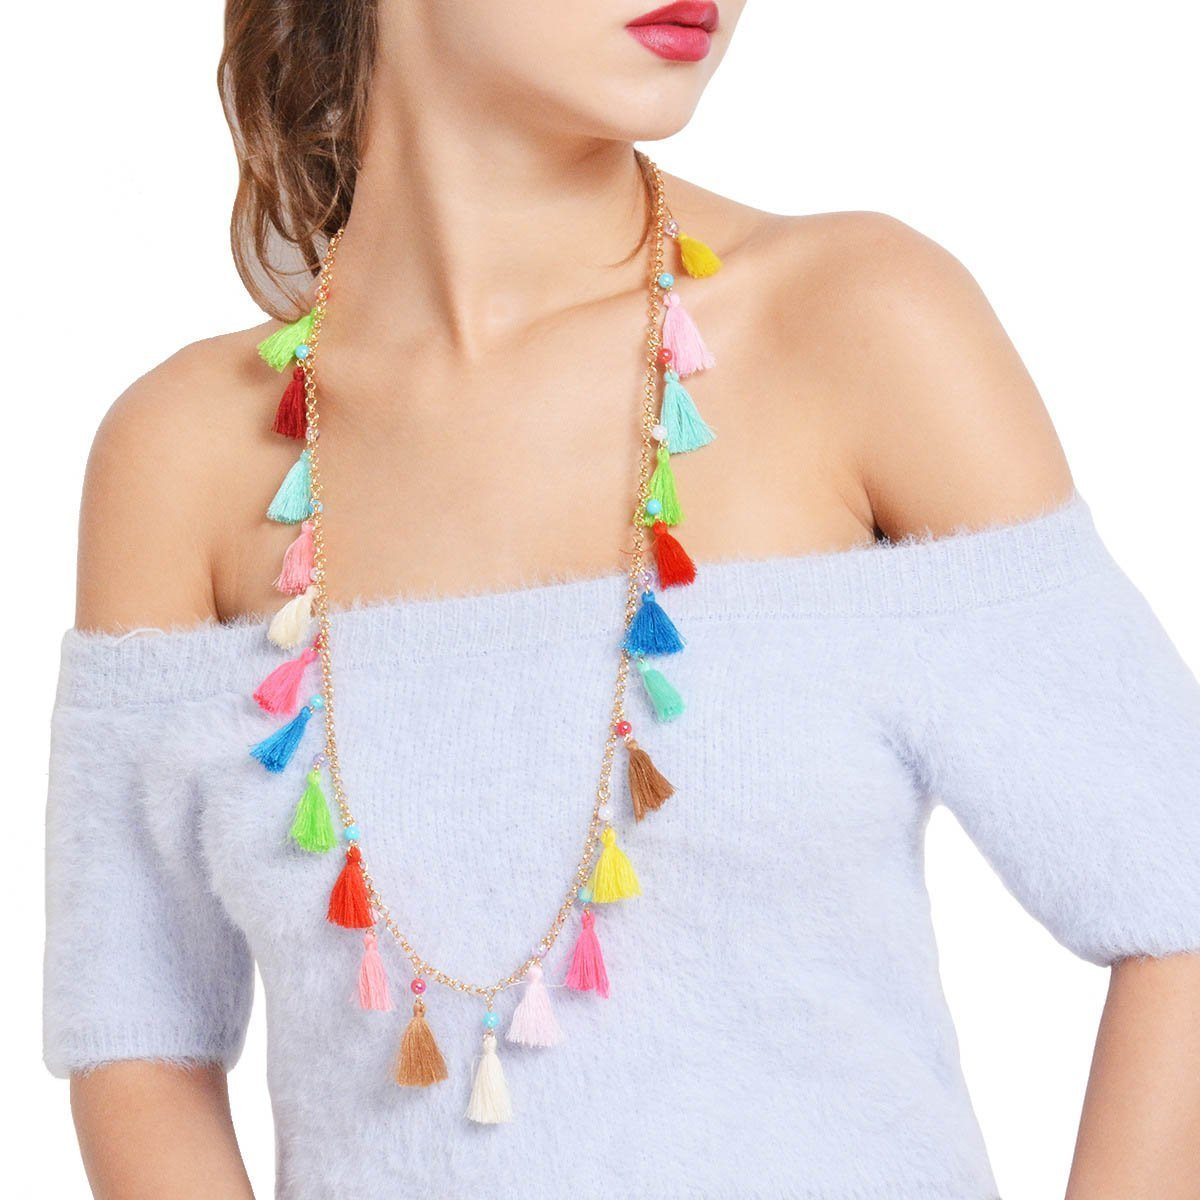 Simsly Long Multi Colored Tassel Necklace with Pendant for Women and Girls (Gold) 4336832603